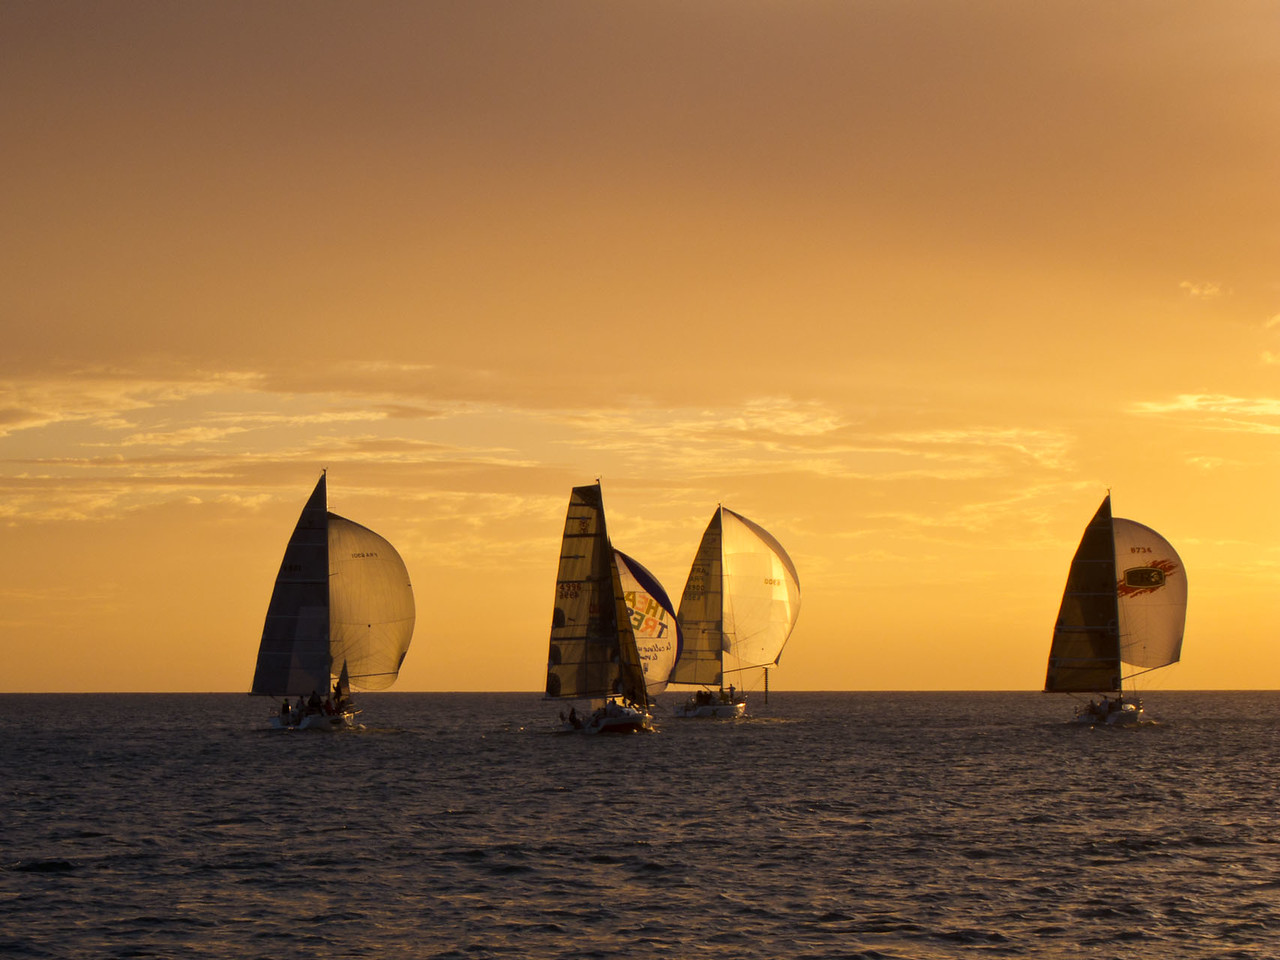 Evening races at Baie de l'orphelinat